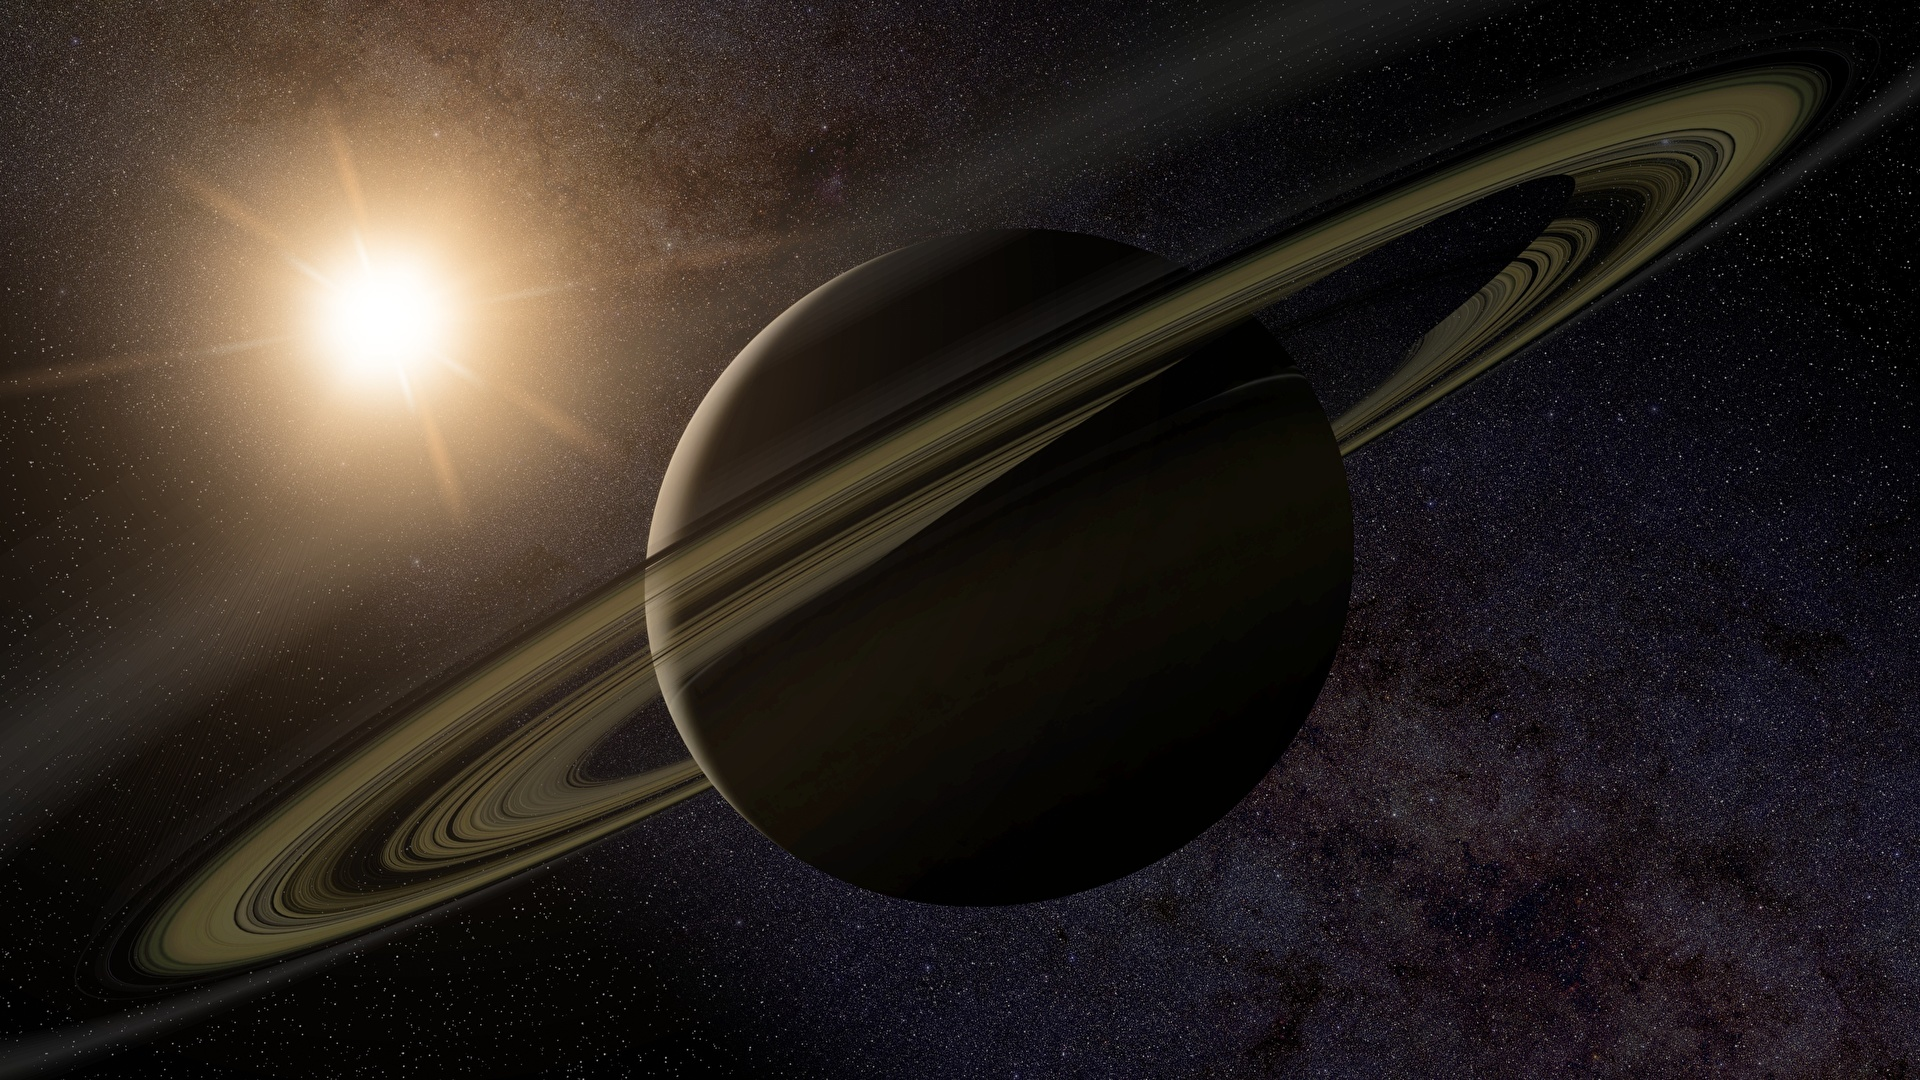 Pictures Planets Saturn Planet Ring System Space 3d 1920x1080